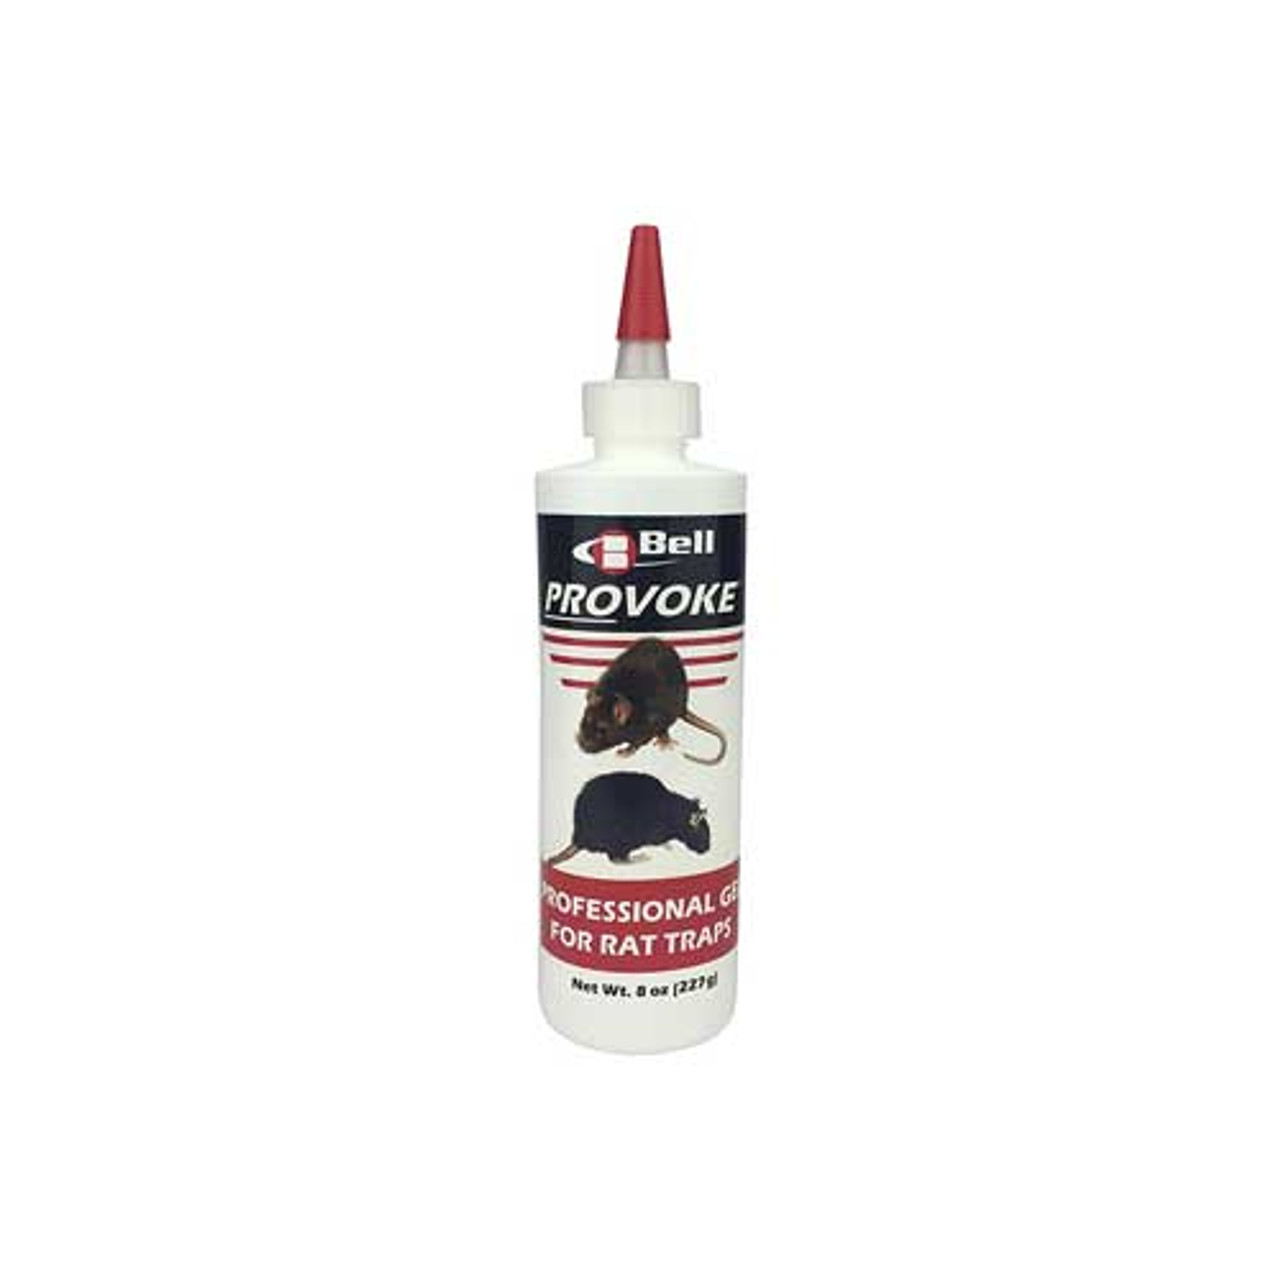 Provoke Rat Attractant